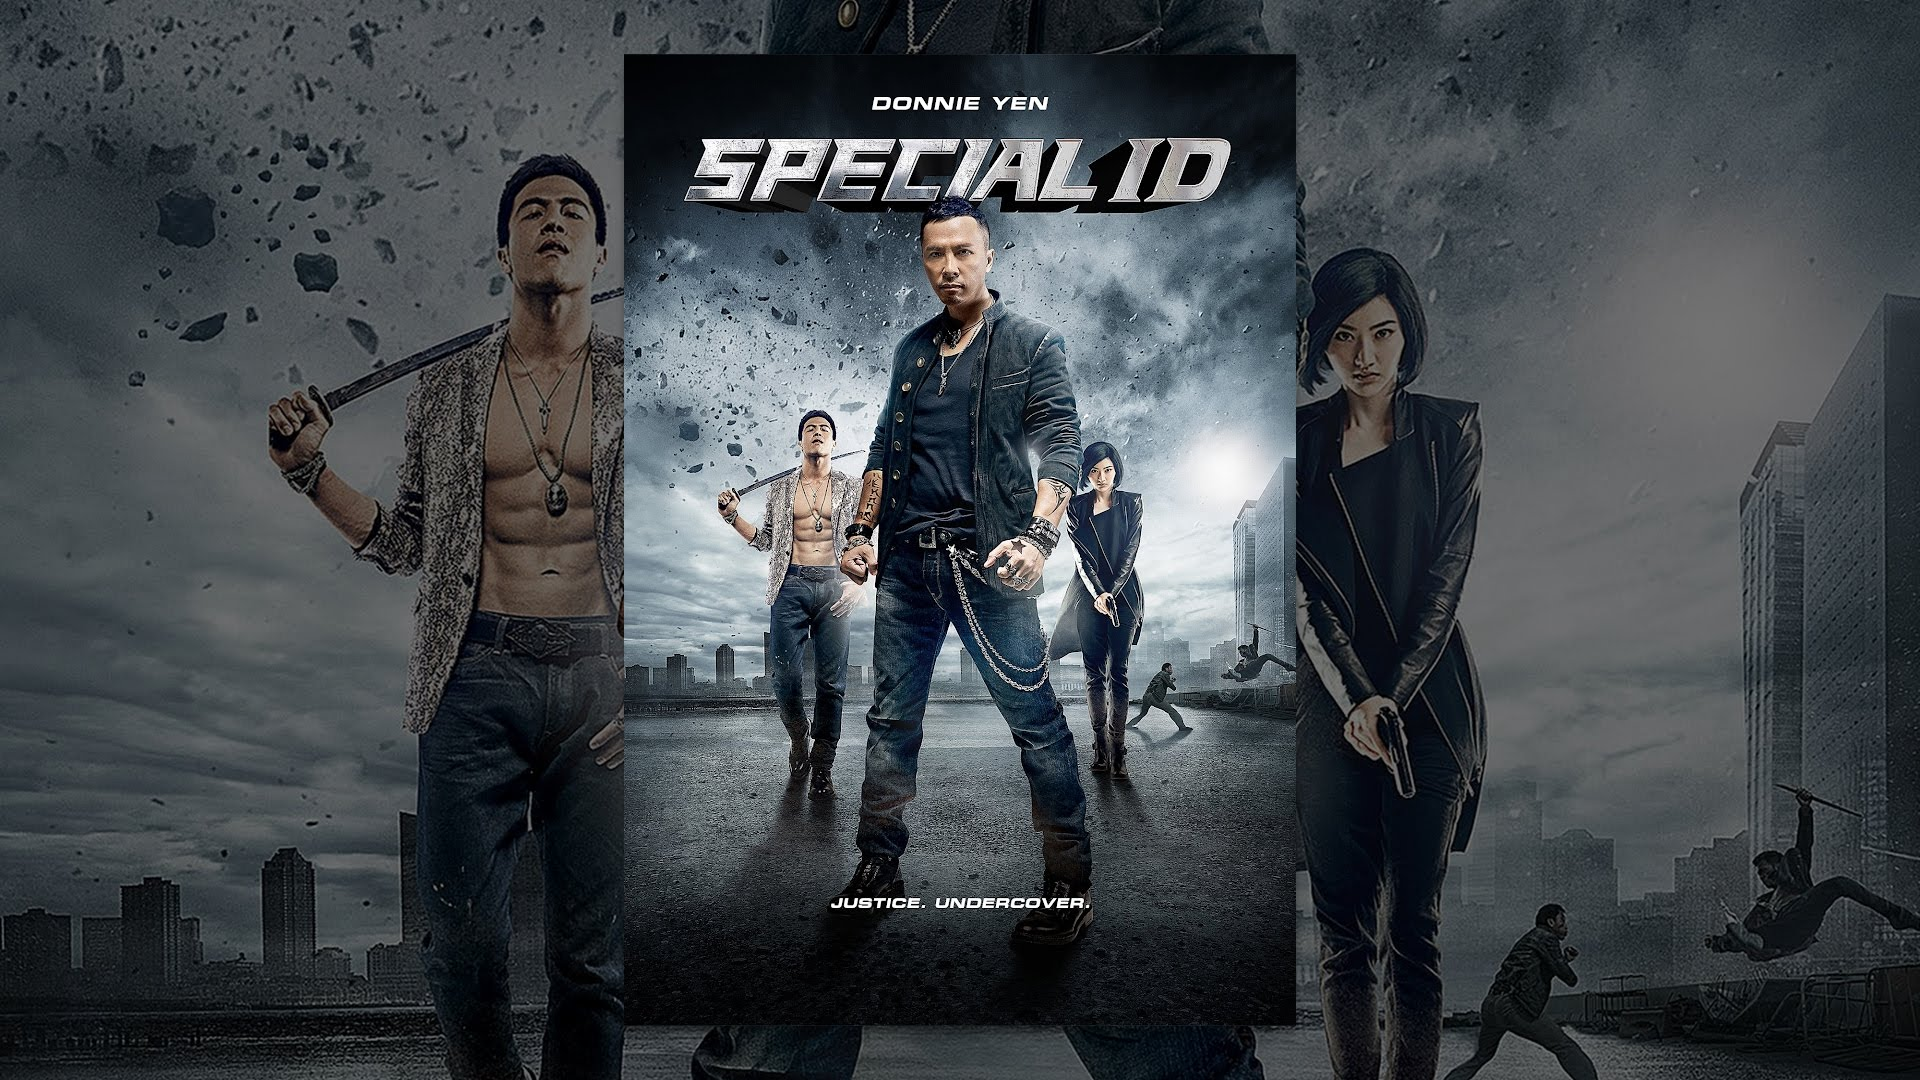 watch special id full movie online free